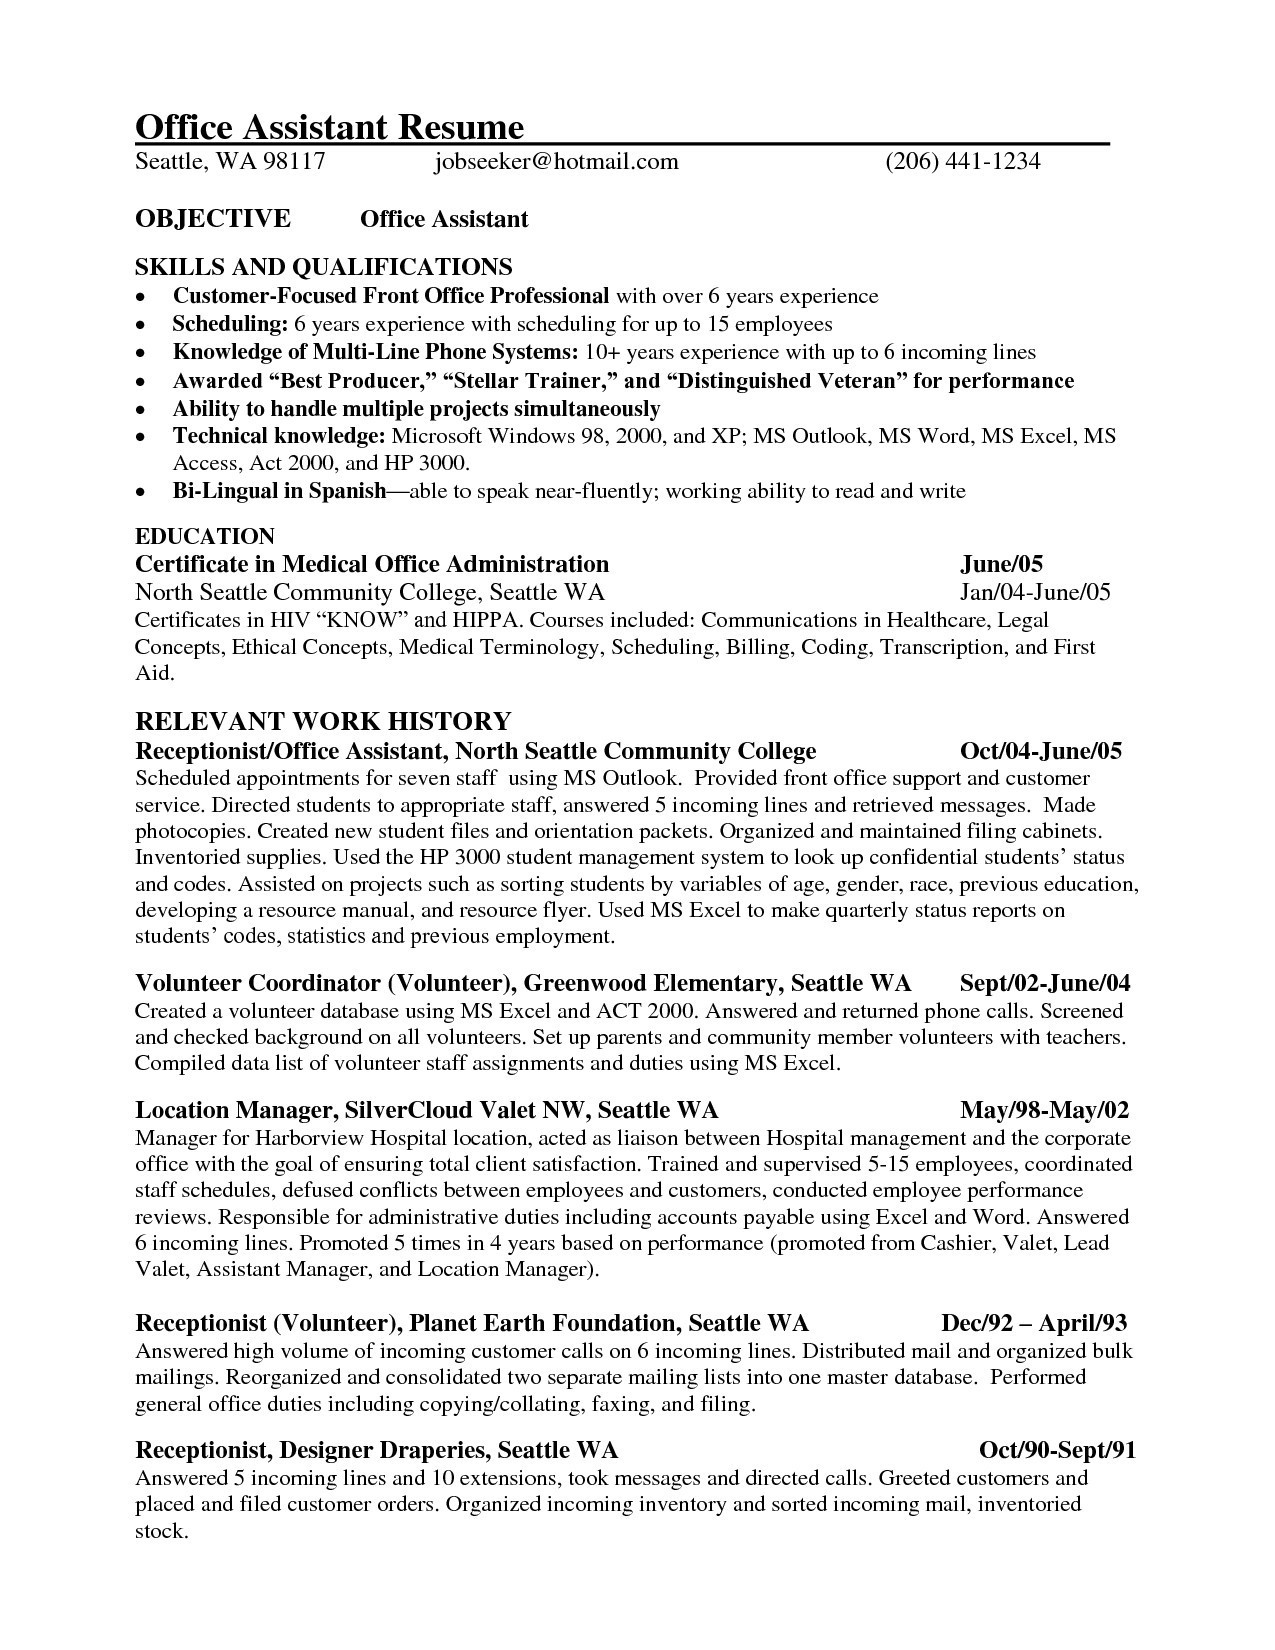 Medical Office Manager Resume Examples - Medical Fice Manager Resume Examples New Fice Manager Job